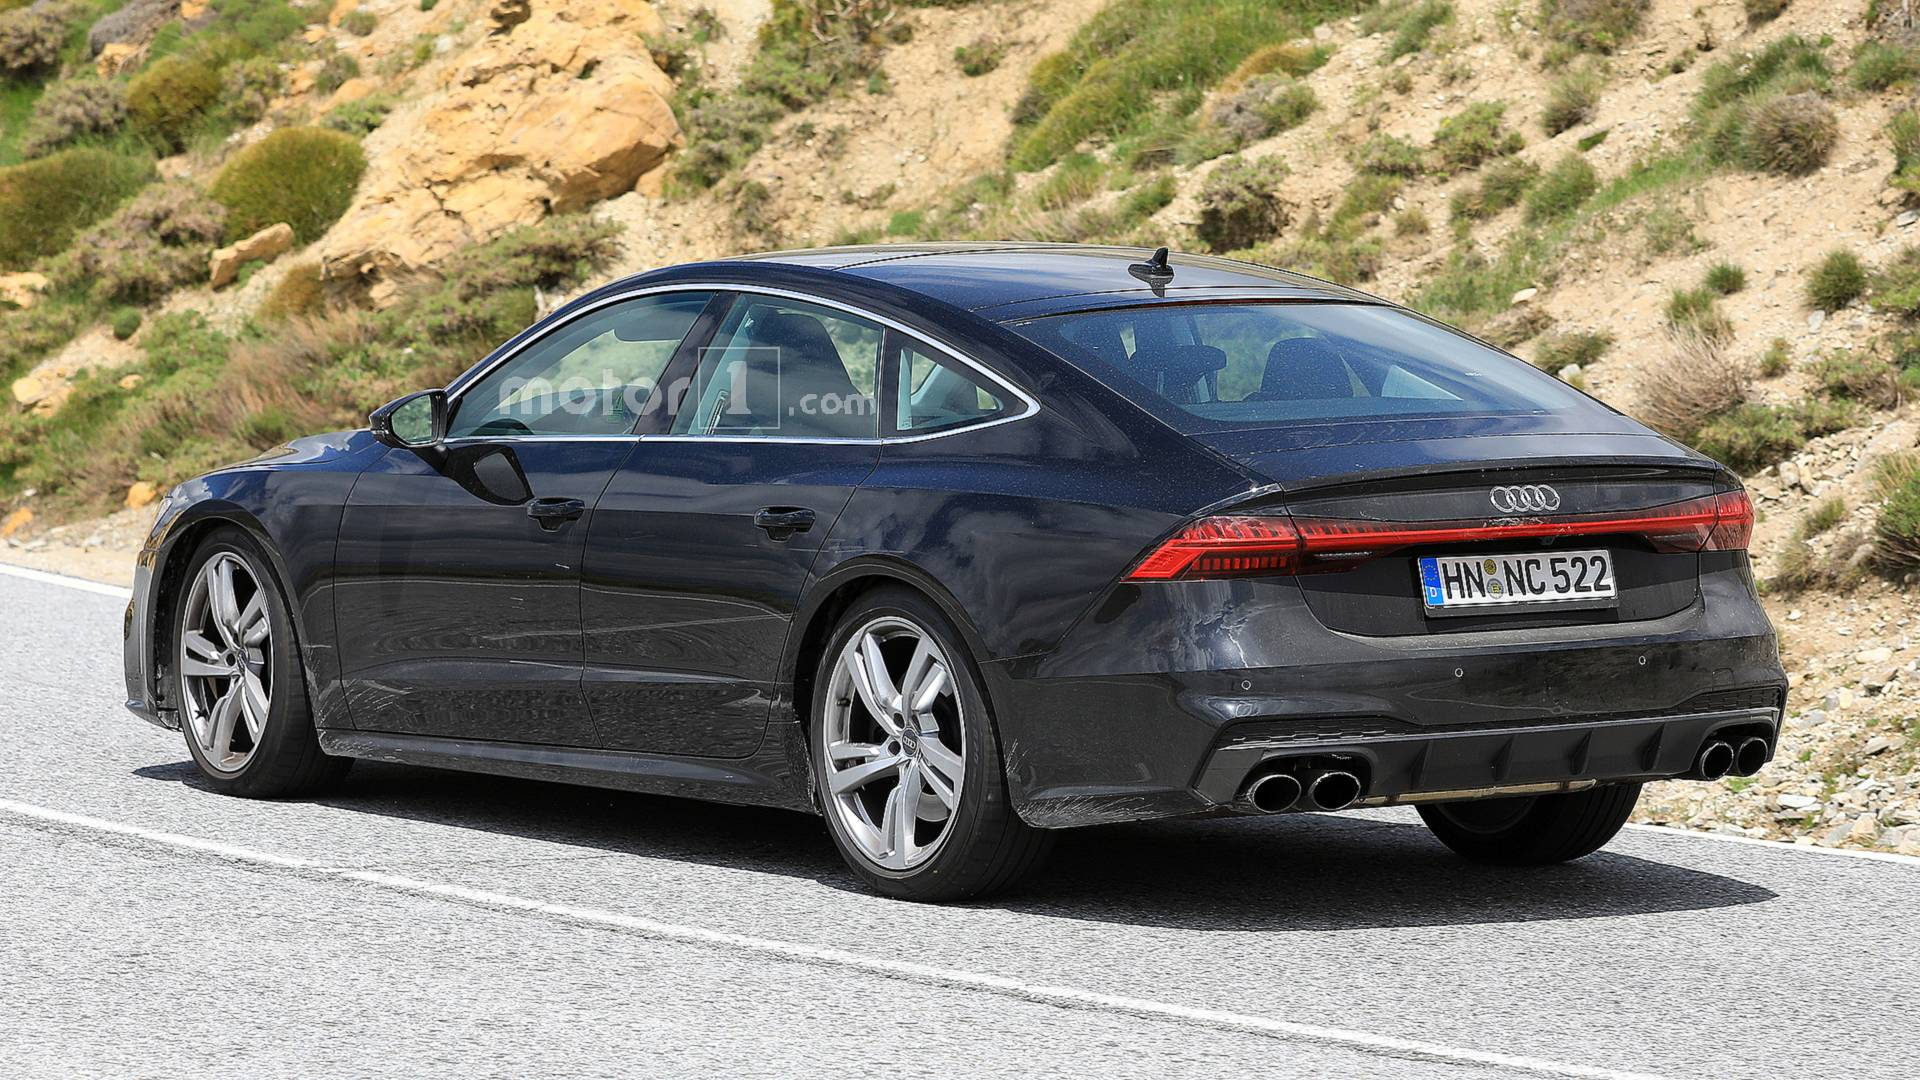 13 All New 2020 Audi A7 Exterior and Interior